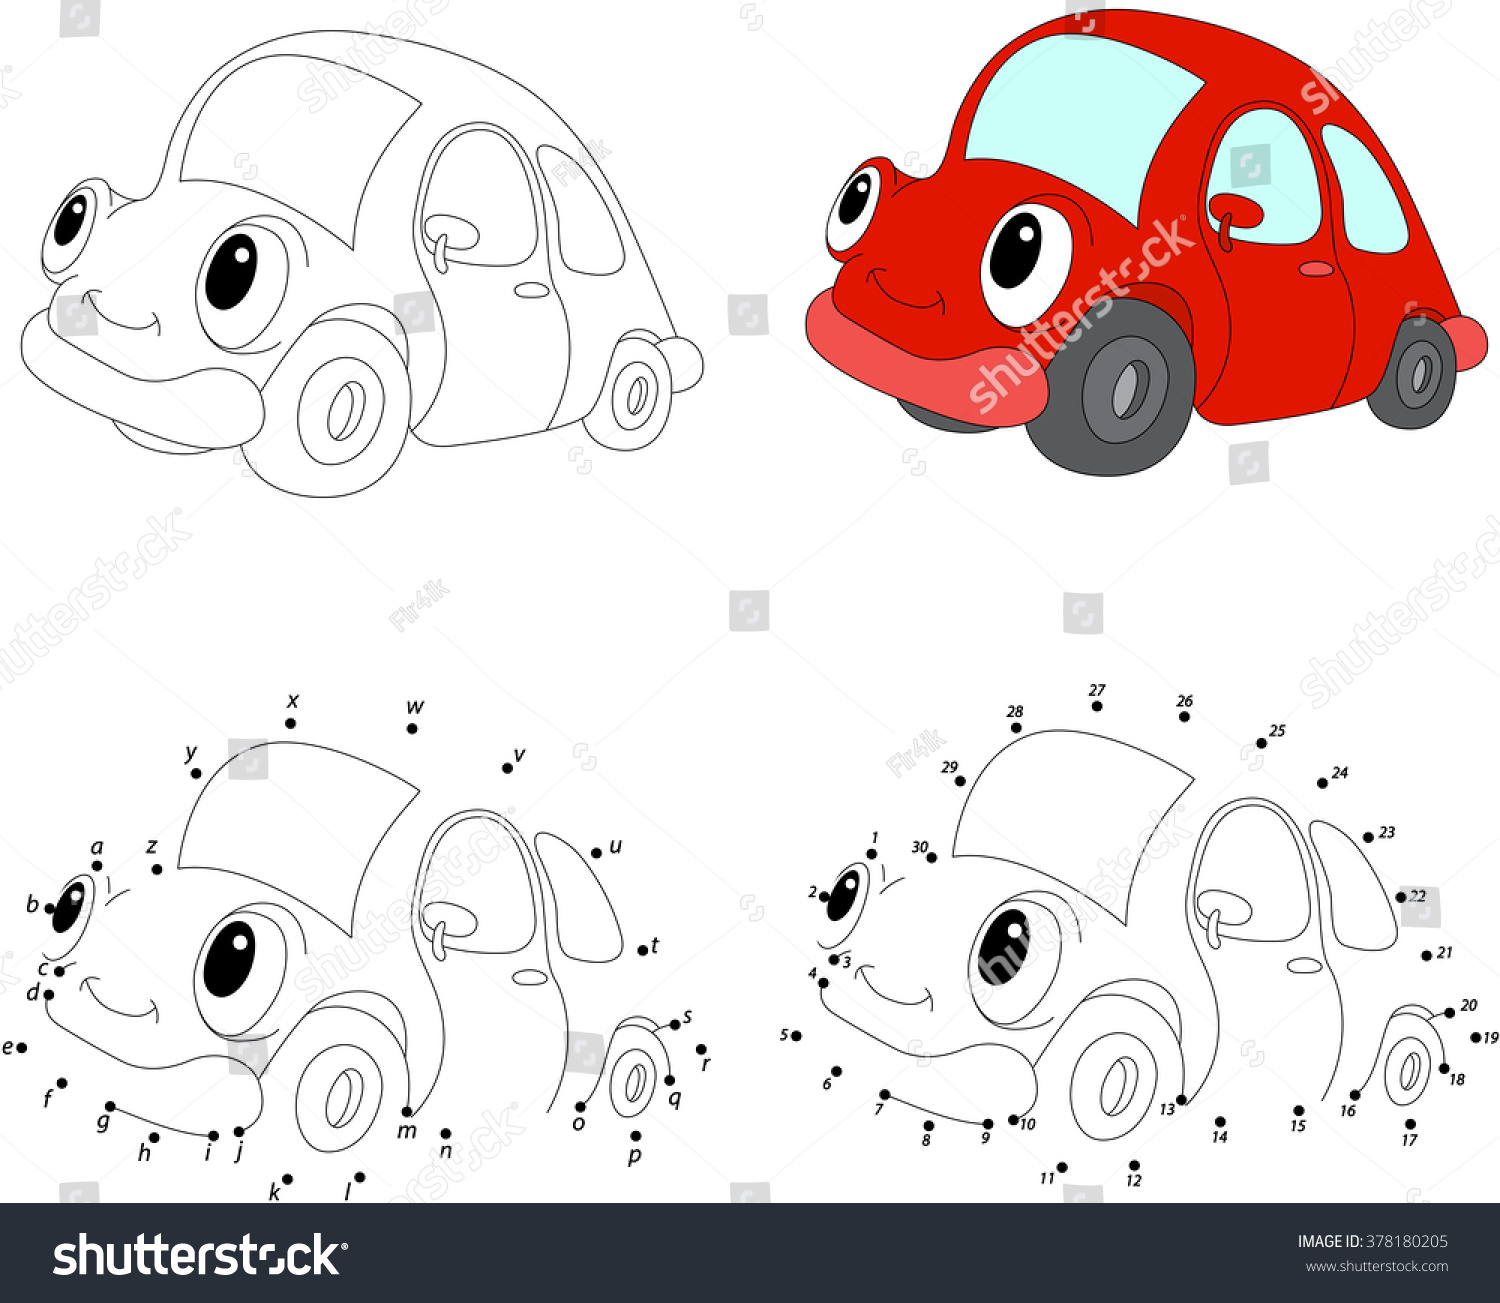 Coloring car games - Cartoon Red Car Illustration Coloring And Dot To Dot Educational Game For Kids